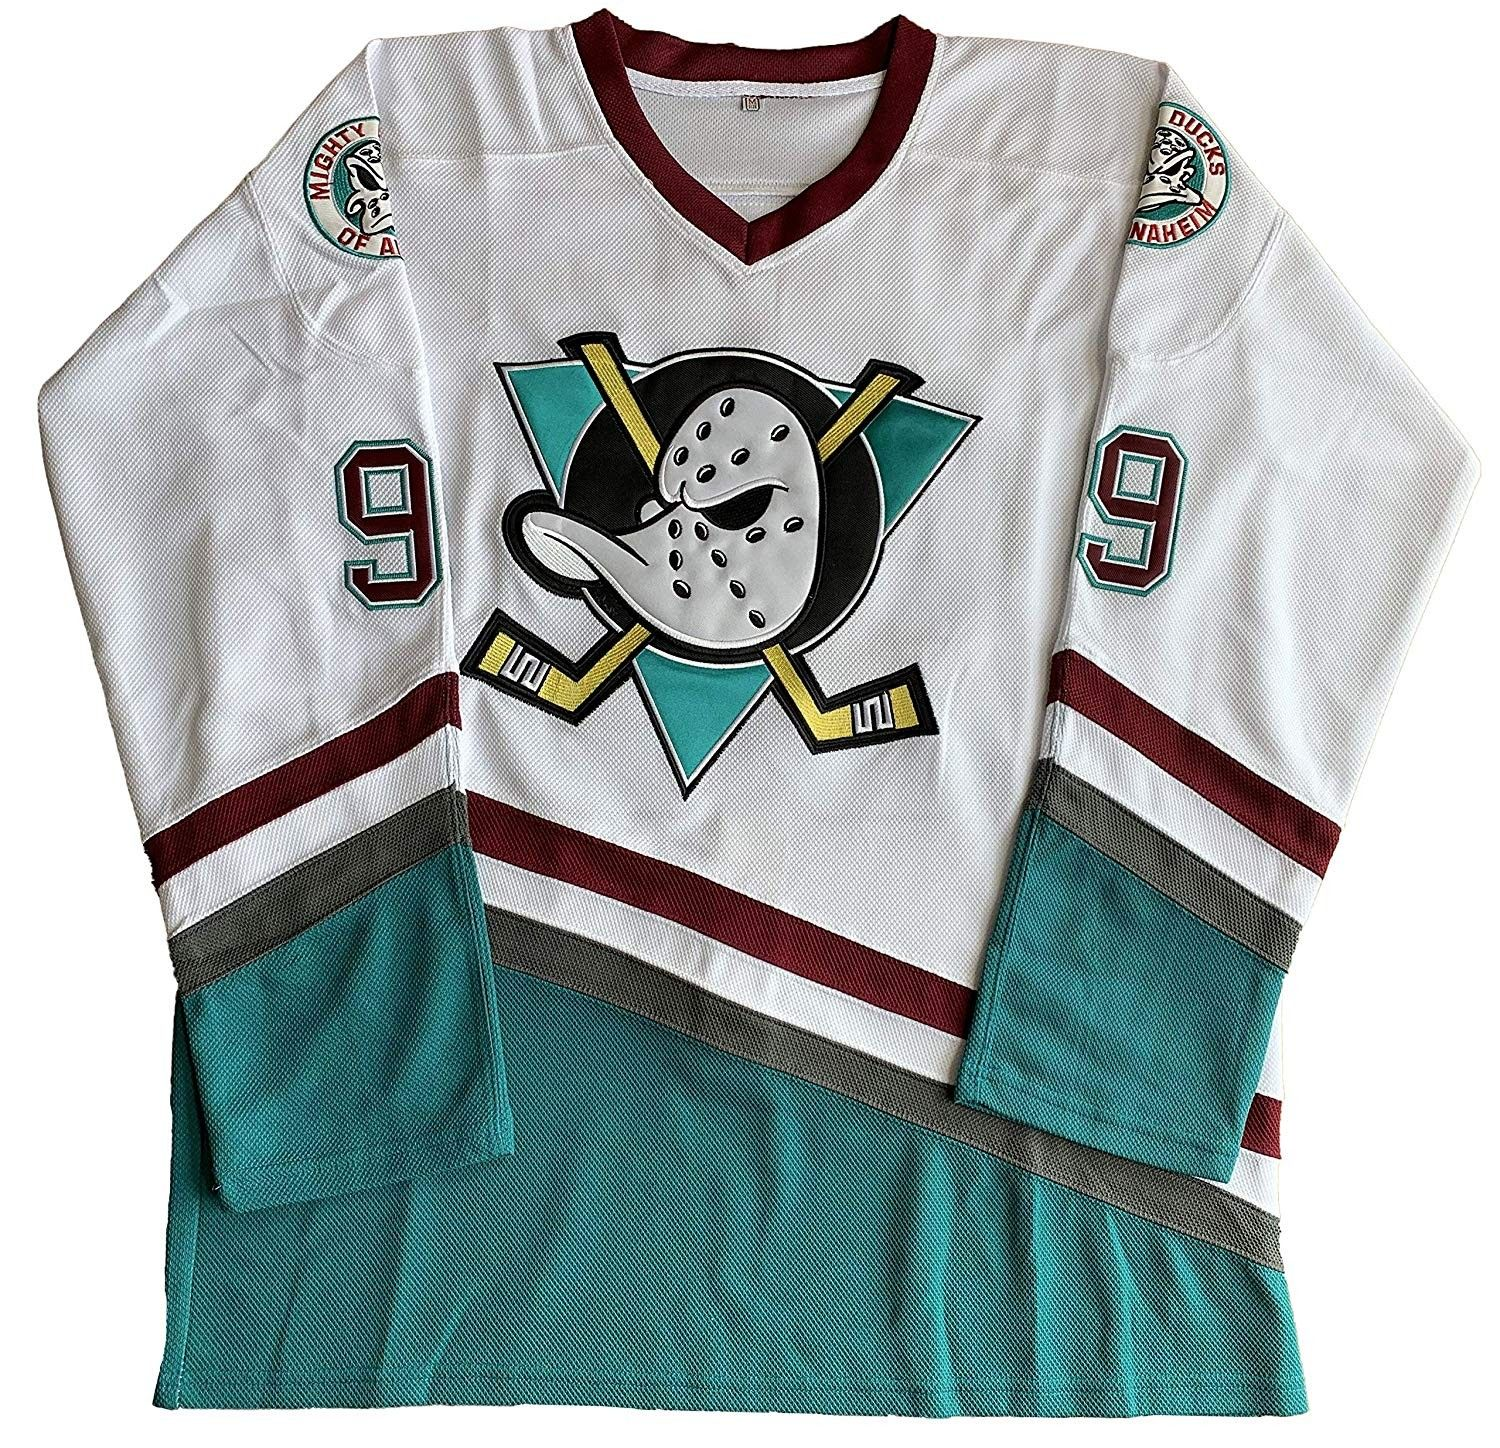 Charlie conway 96 mighty ducks adam banks 99 movie ice